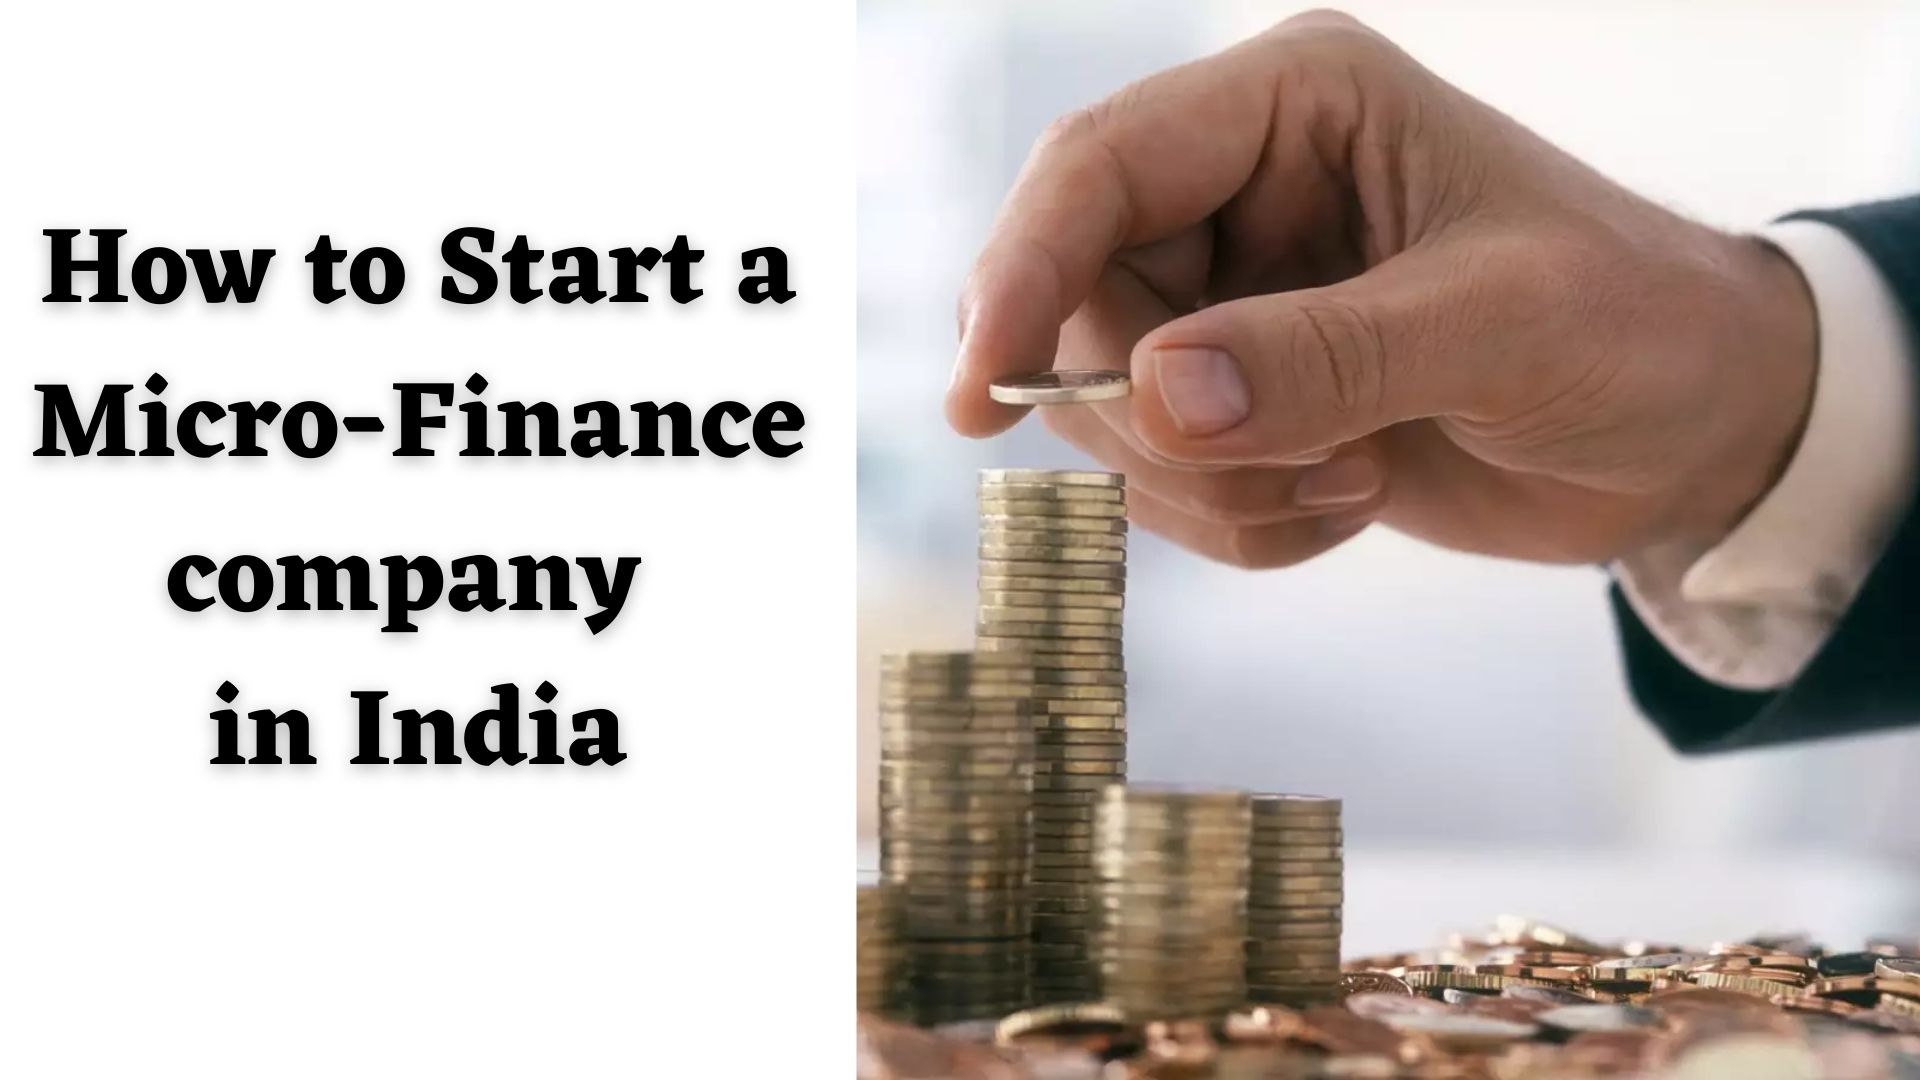 How to Start a Micro-Finance company in India